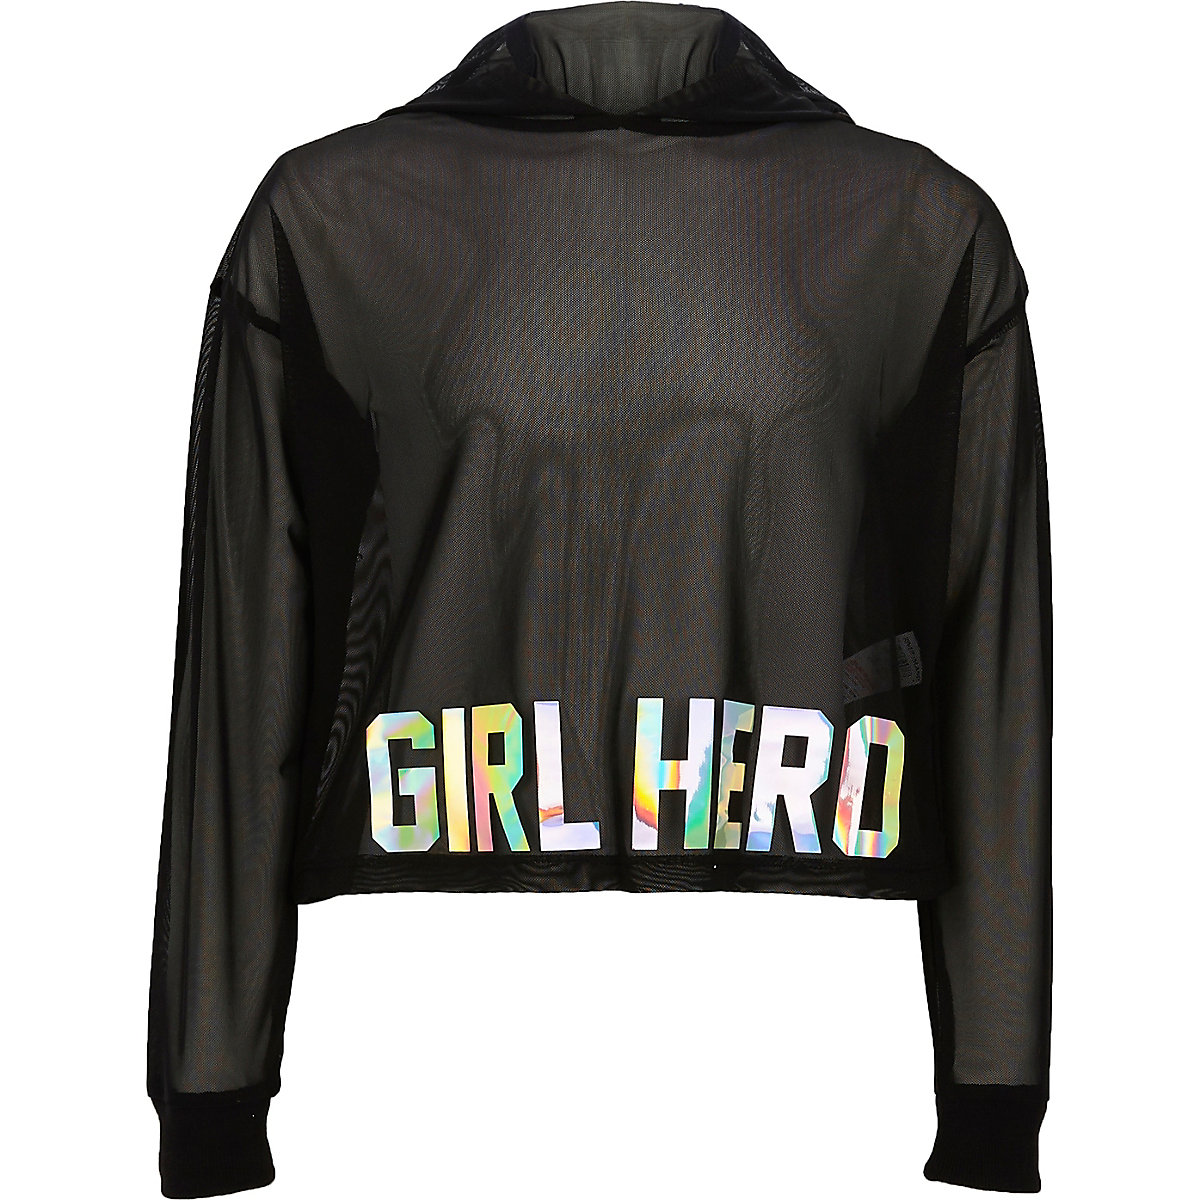 Sweat court « girl hero » en tulle noir à capuche pour fille